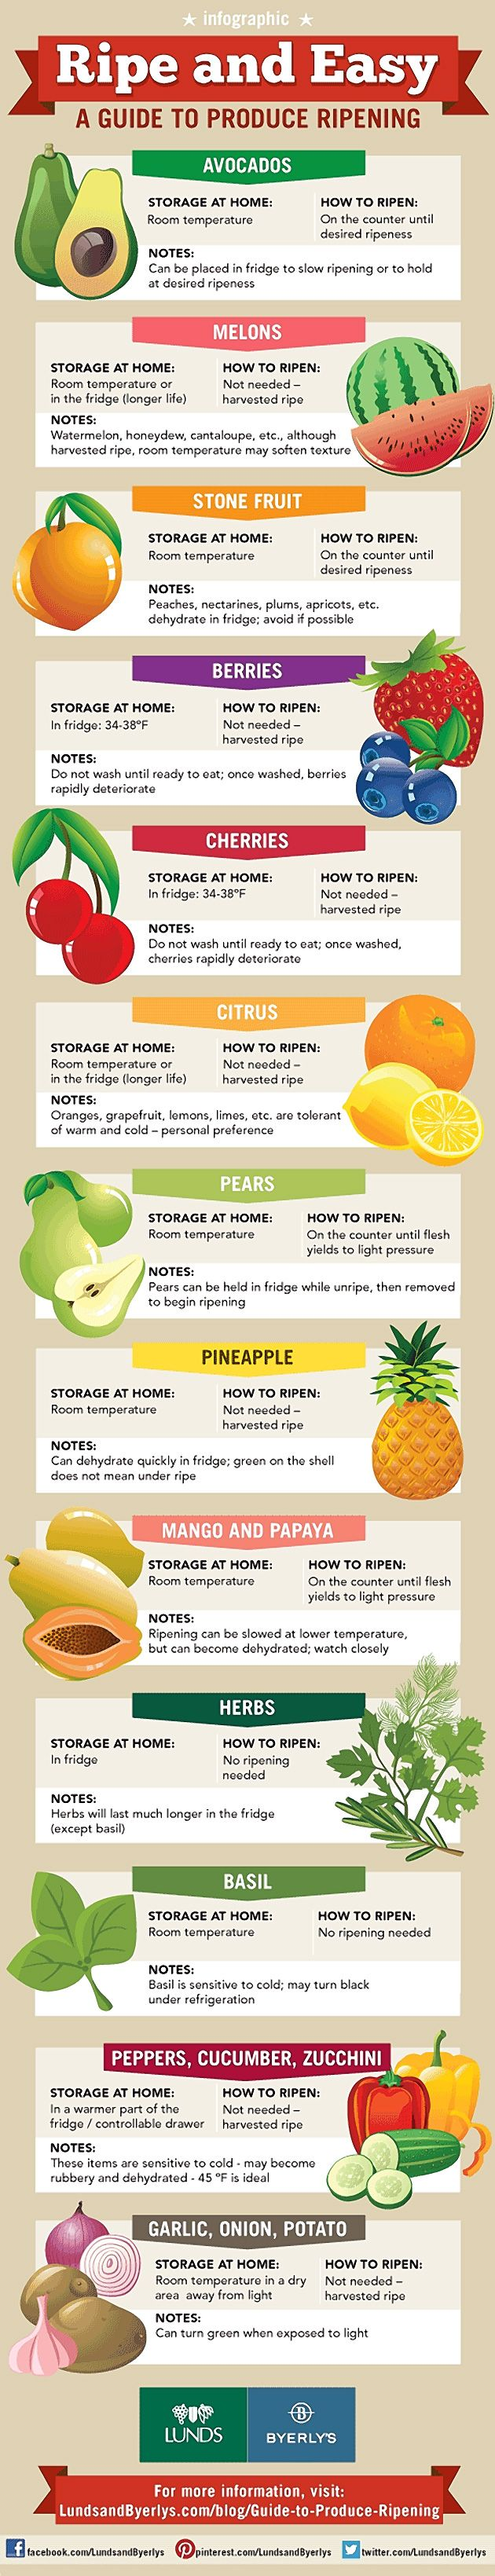 A Guide To Produce Ripening Infographic